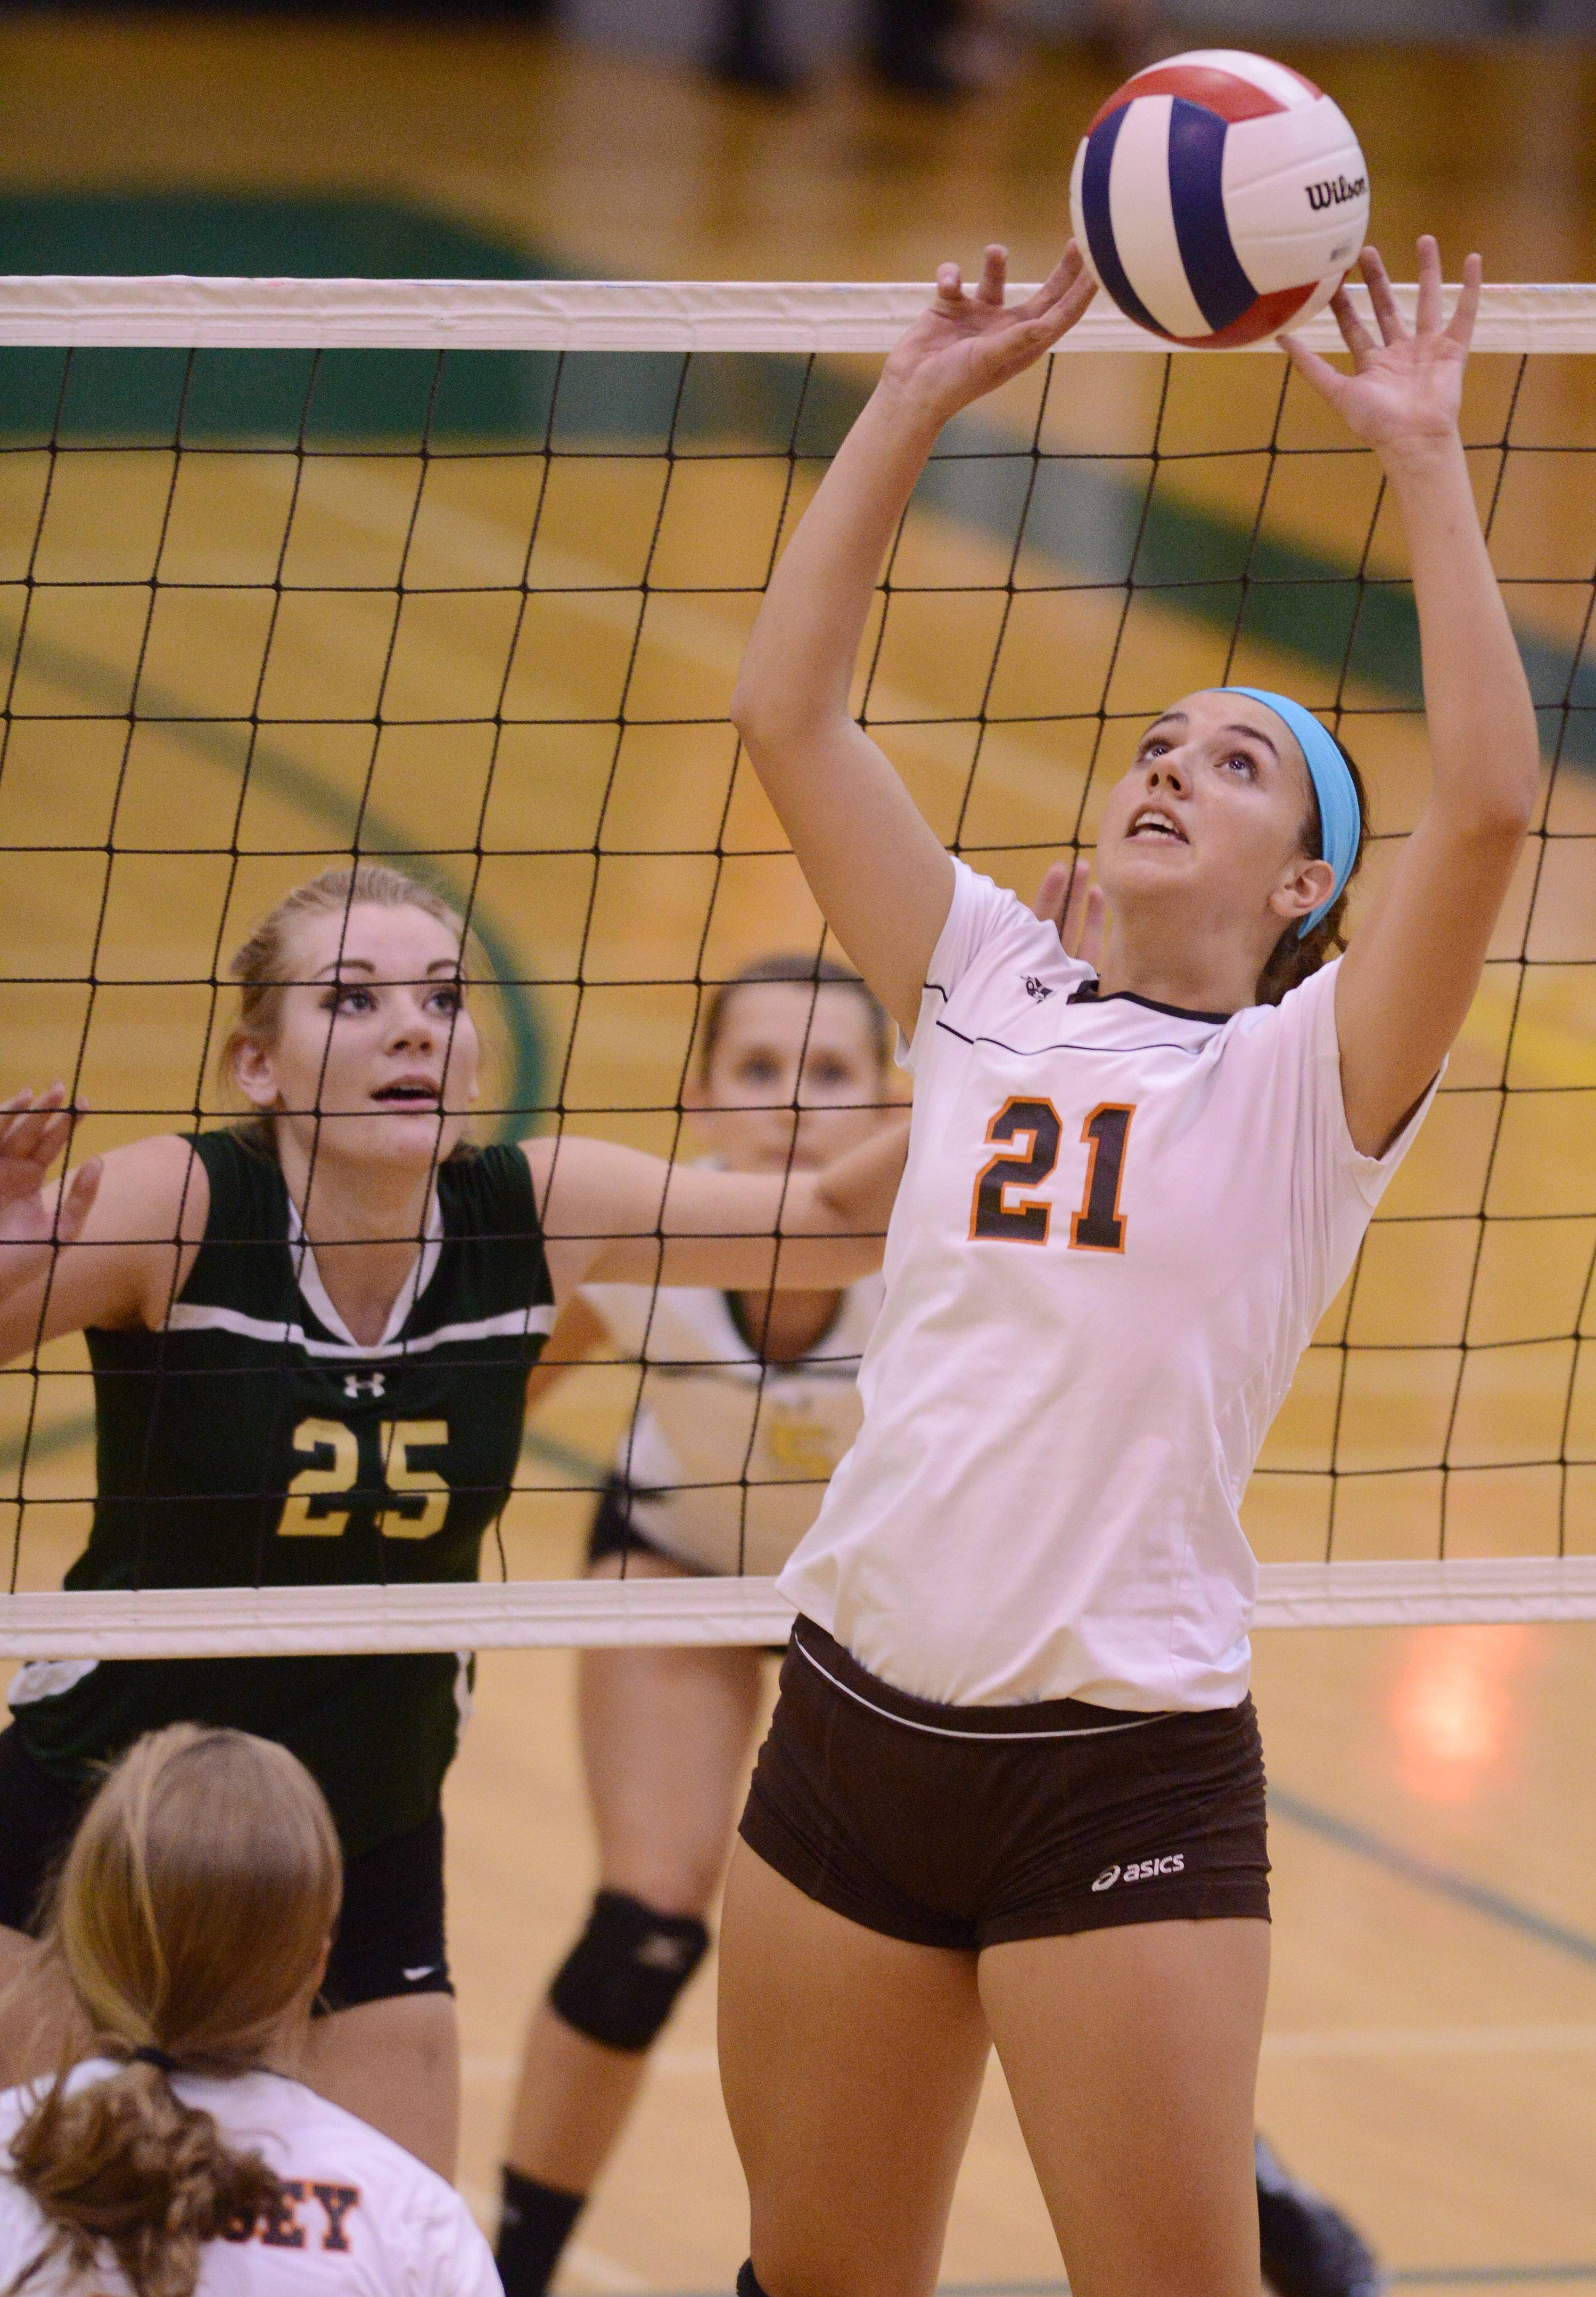 Hersey's Courtney Stedman, right, sets the ball at the net in front of Fremd's Lane Hindenburg during Tuesday's volleyball match in Palatine.